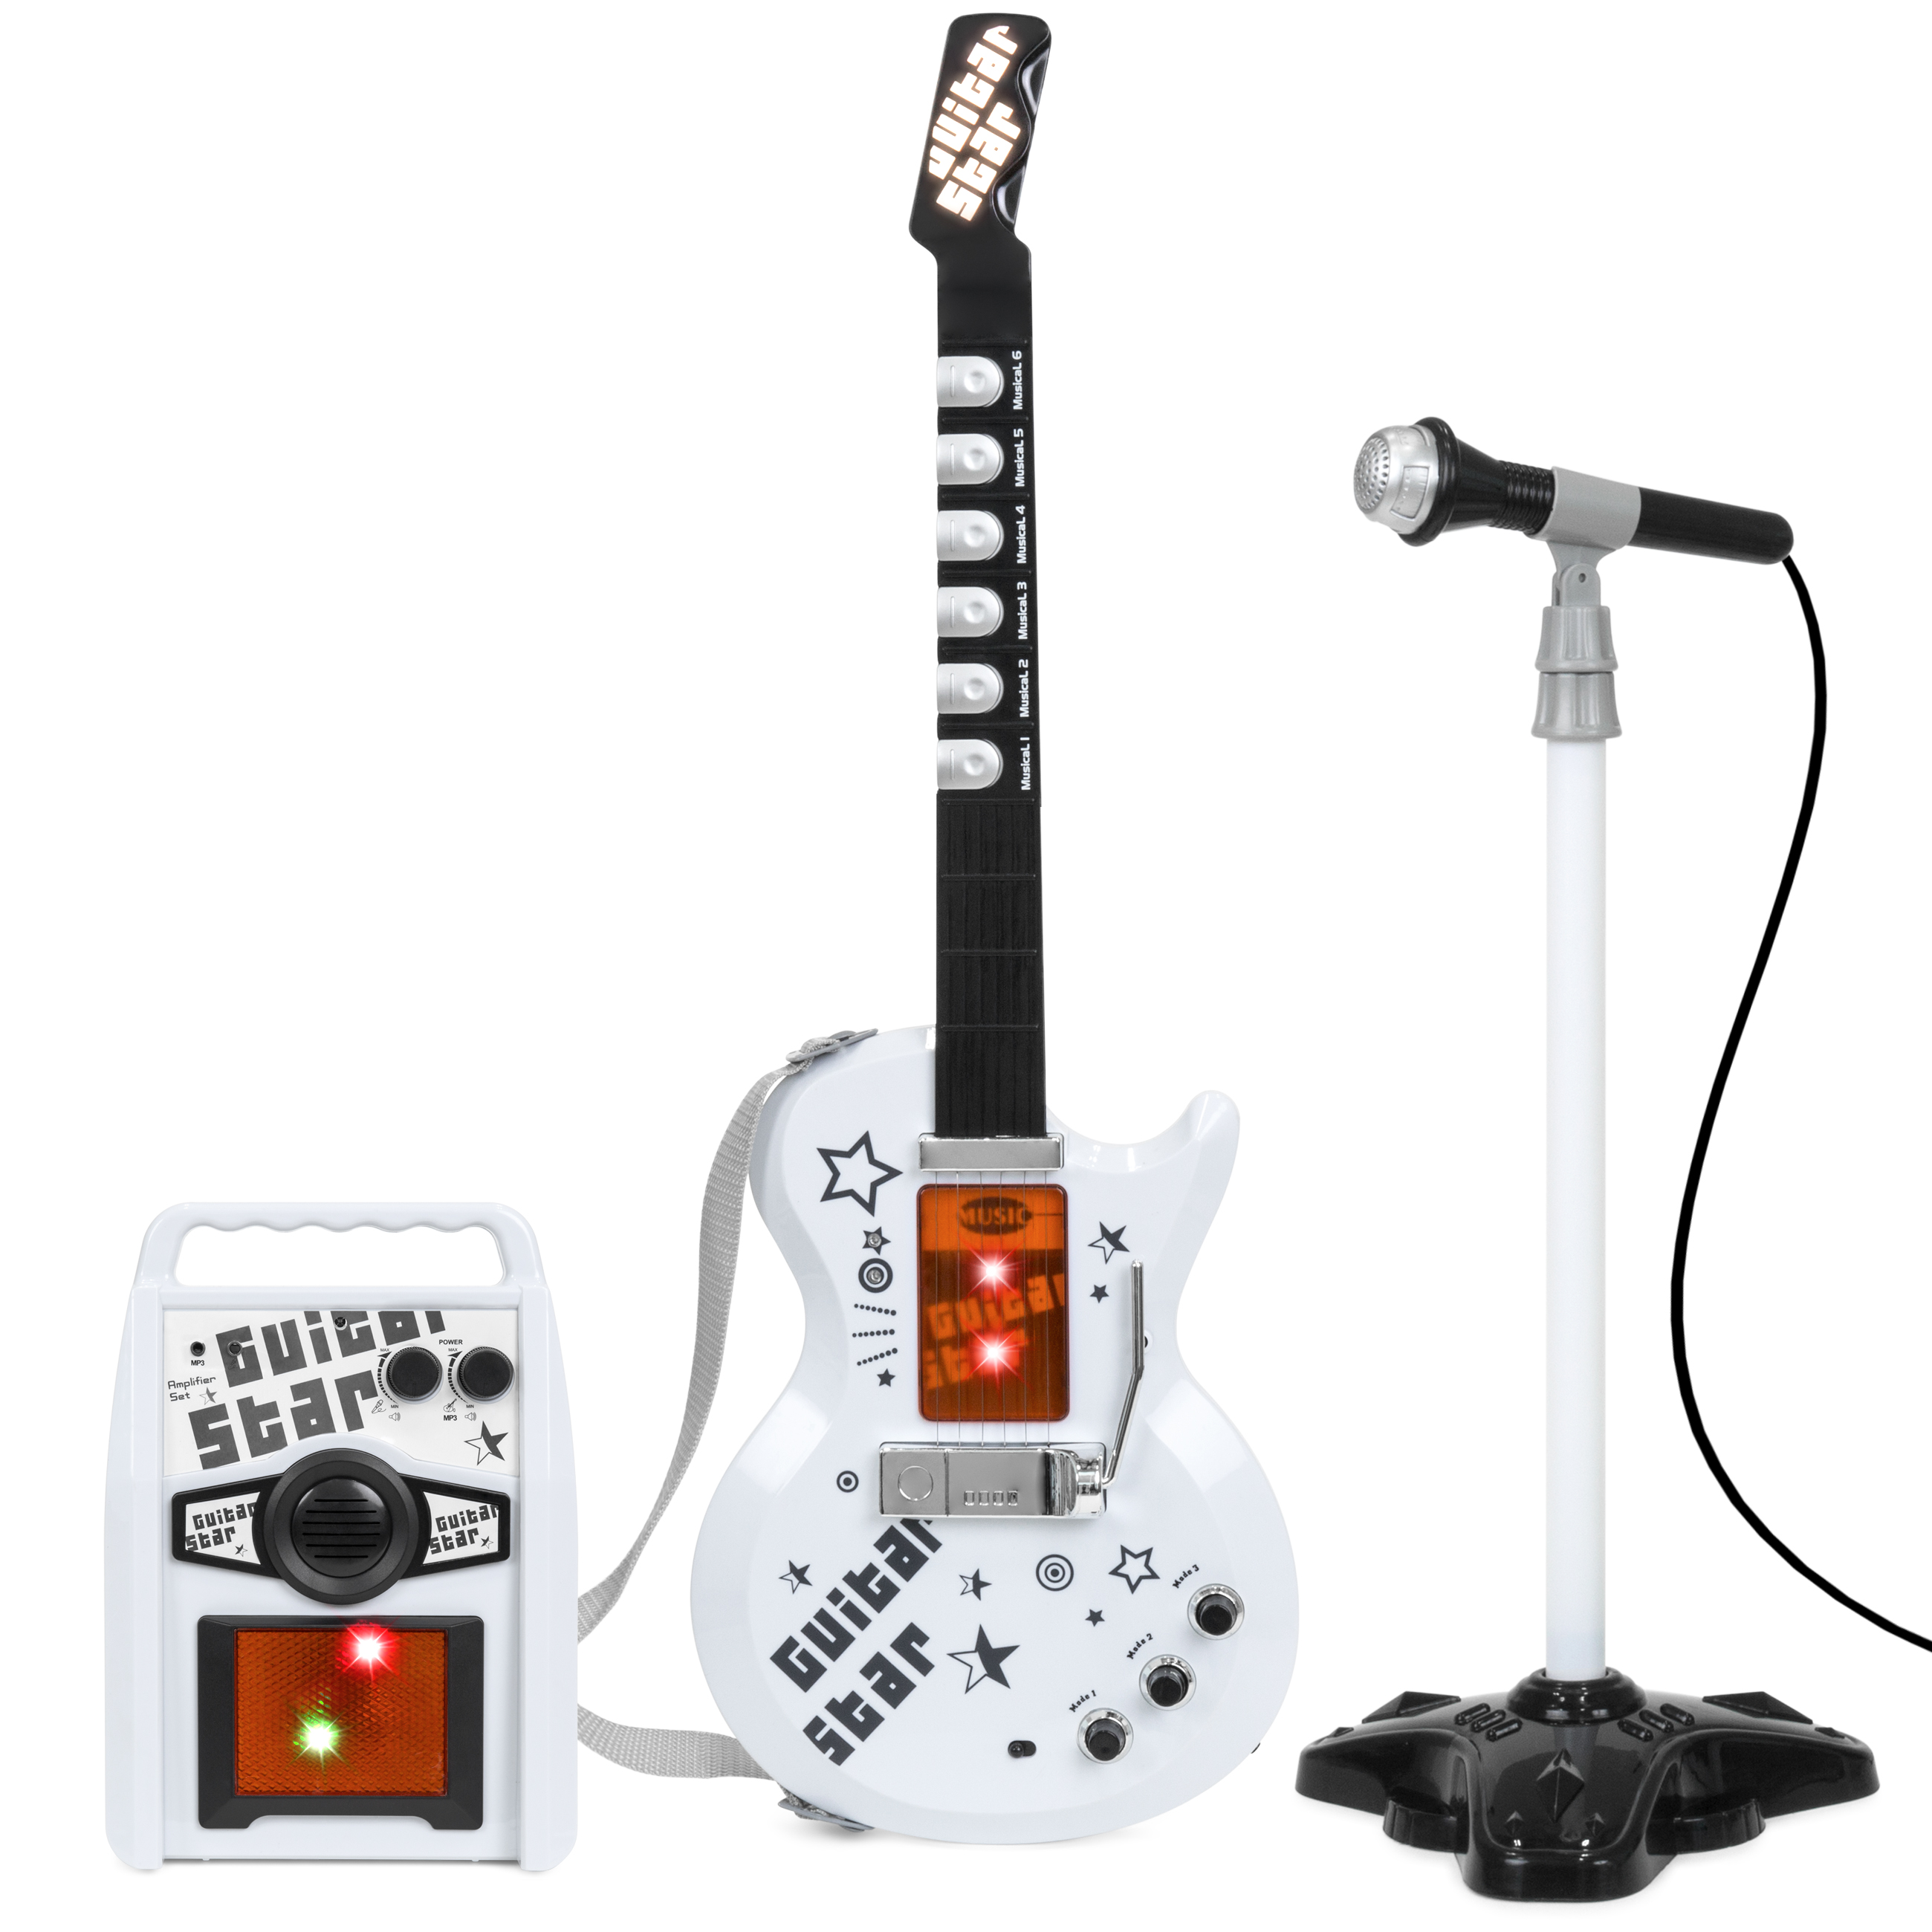 Best Choice Products Kids Electric Guitar Star Toy Play Set w/ 6 Demo Tunes, Microphone, Wireless Amp, AUX - White